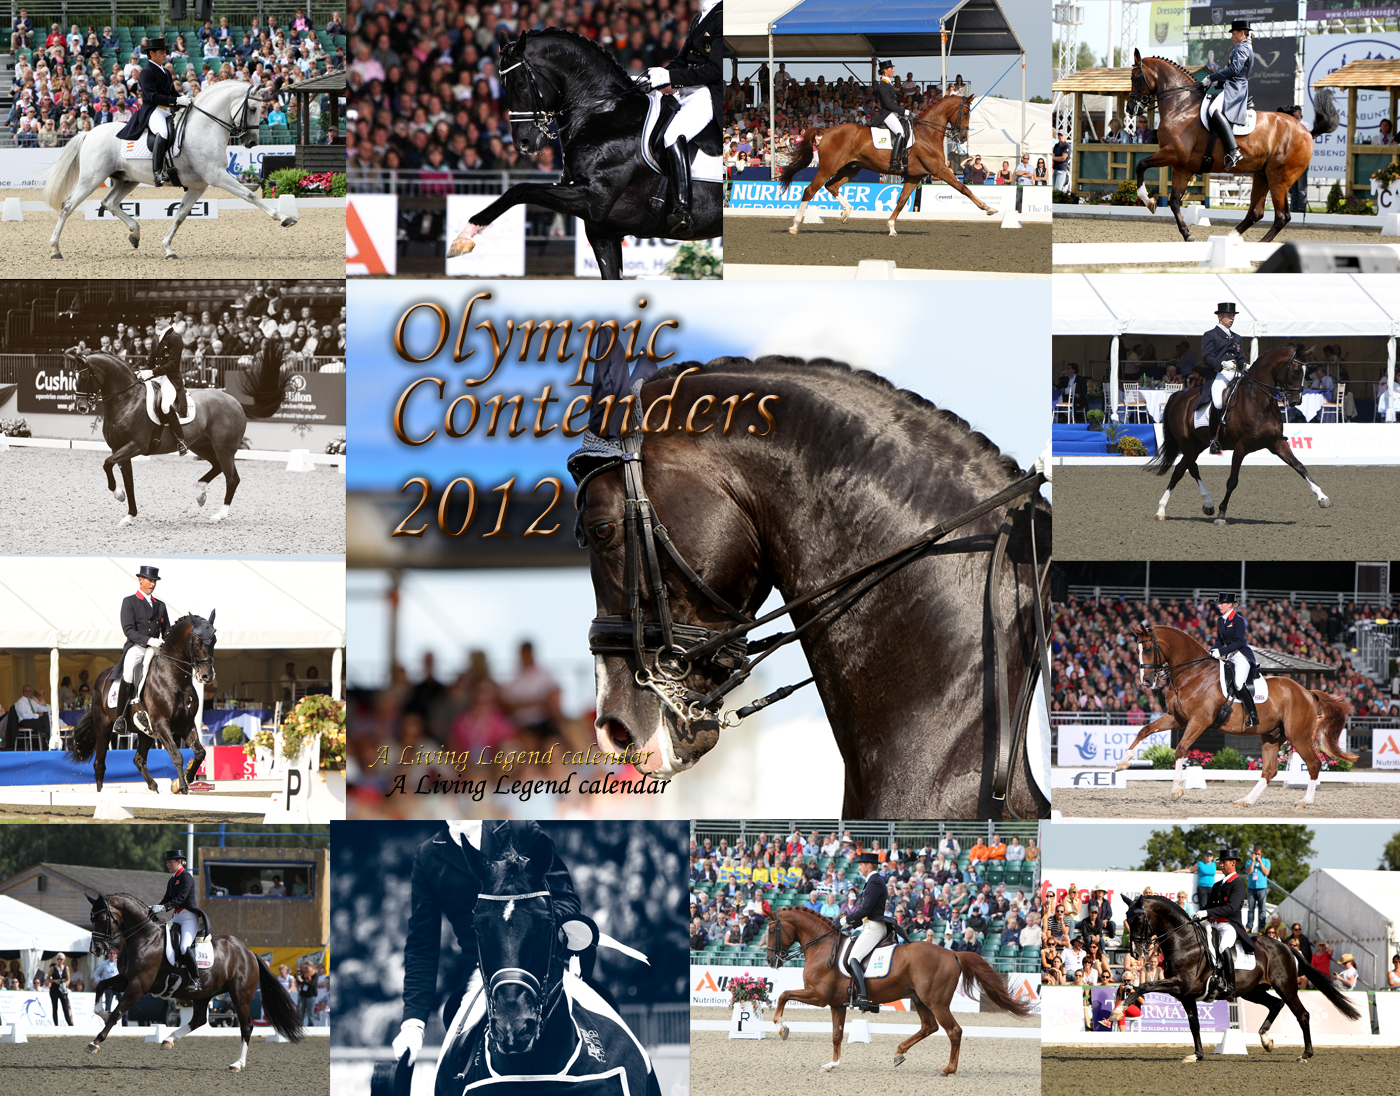 Living Legend Dressage Calendars for 2012 available for Christmas gifts